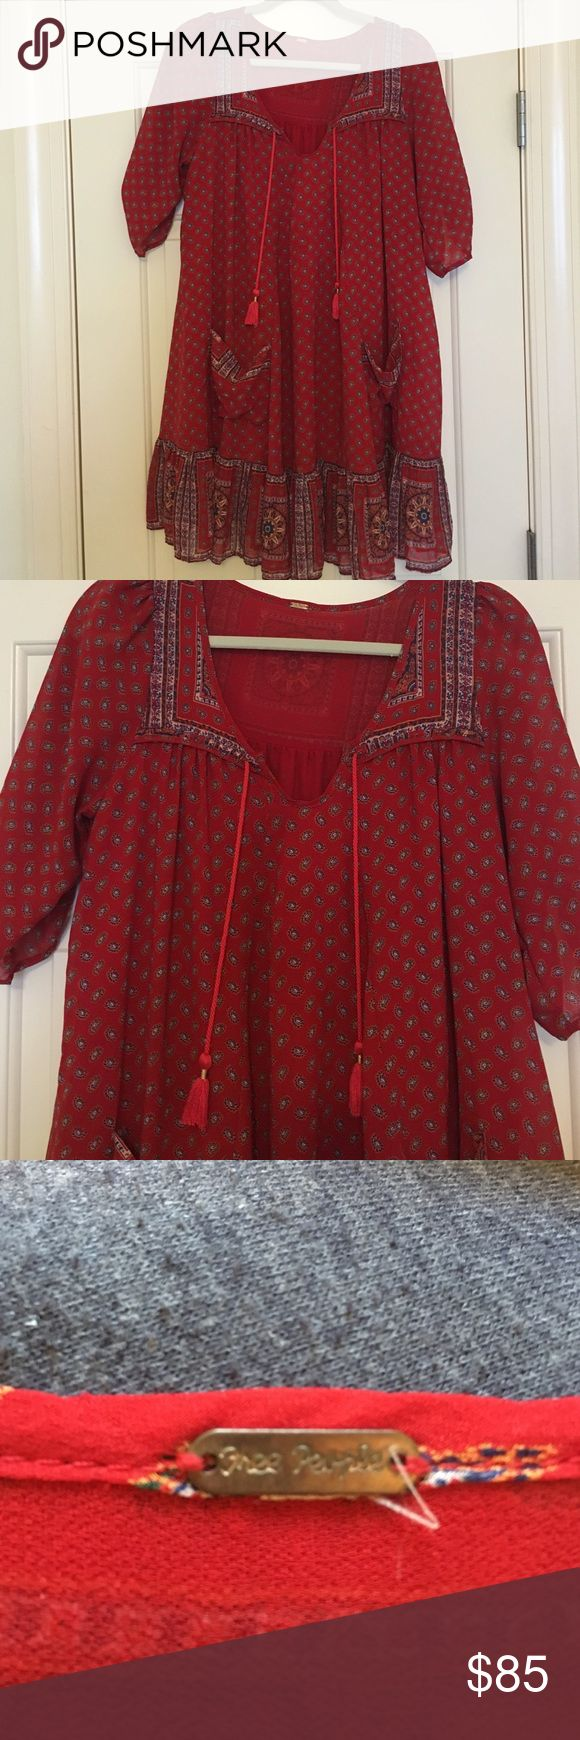 Free people red tunic dress! Free People, red tunic dress with tassels and pockets. Never worn. Free People Dresses Long Sleeve